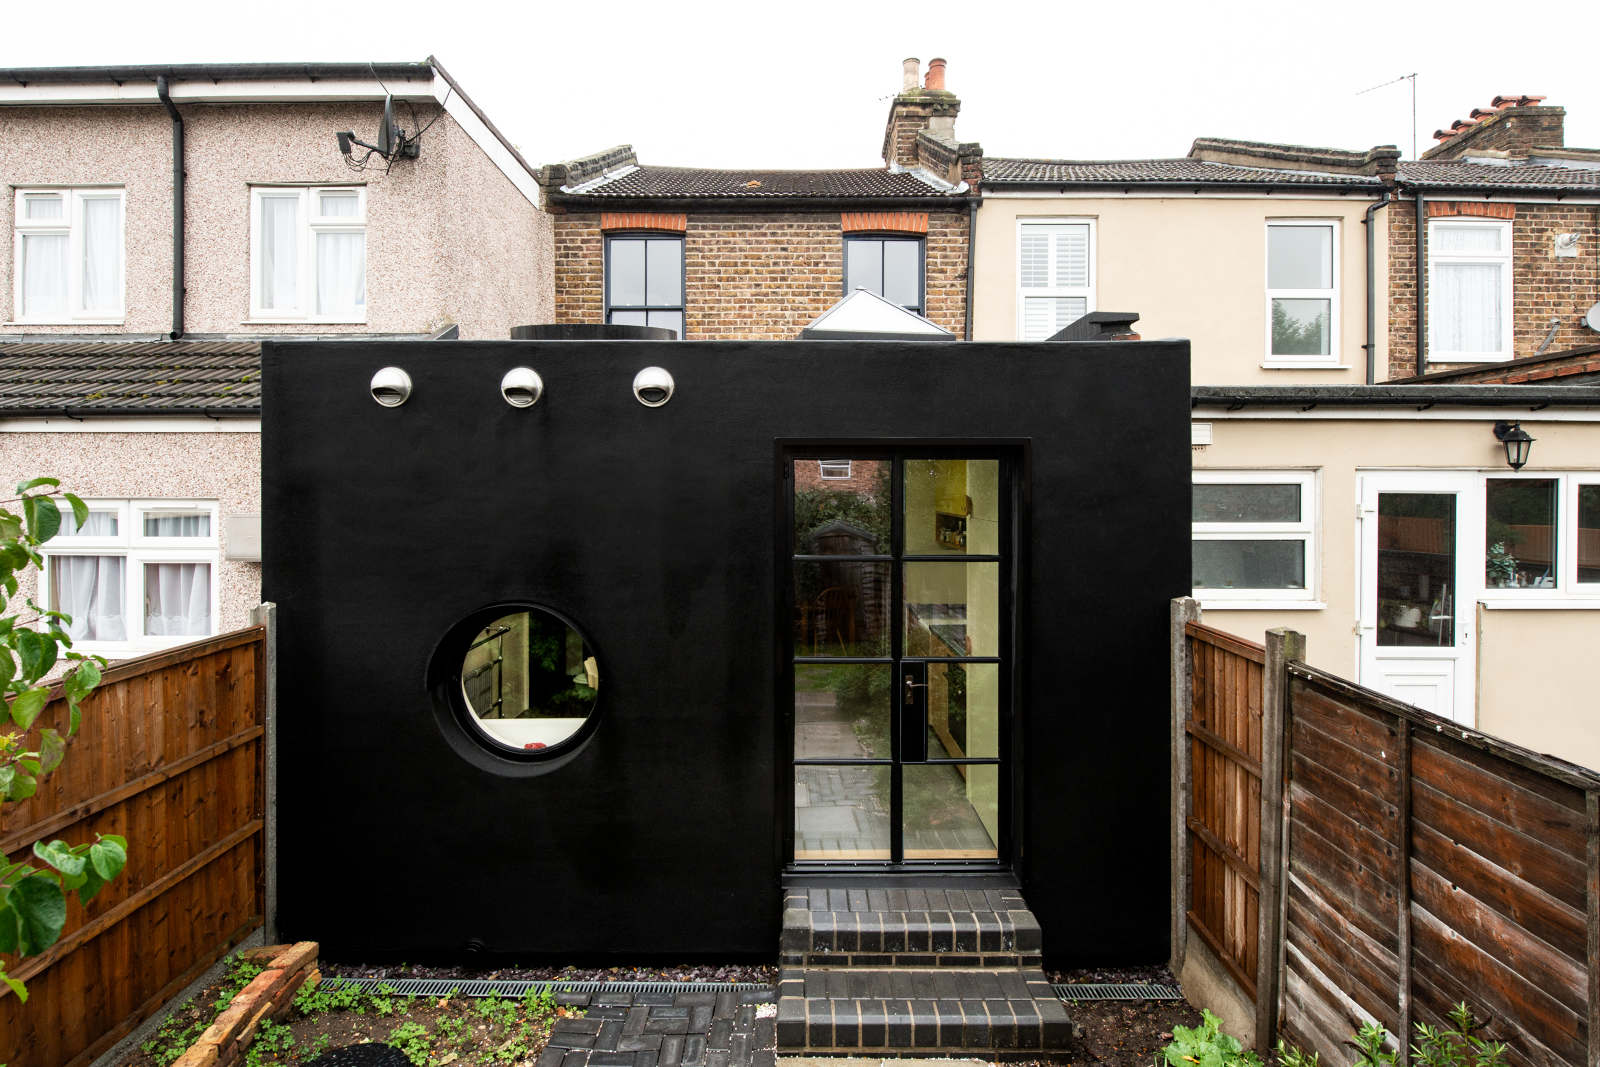 All-black home addition hides playful shapes and colors